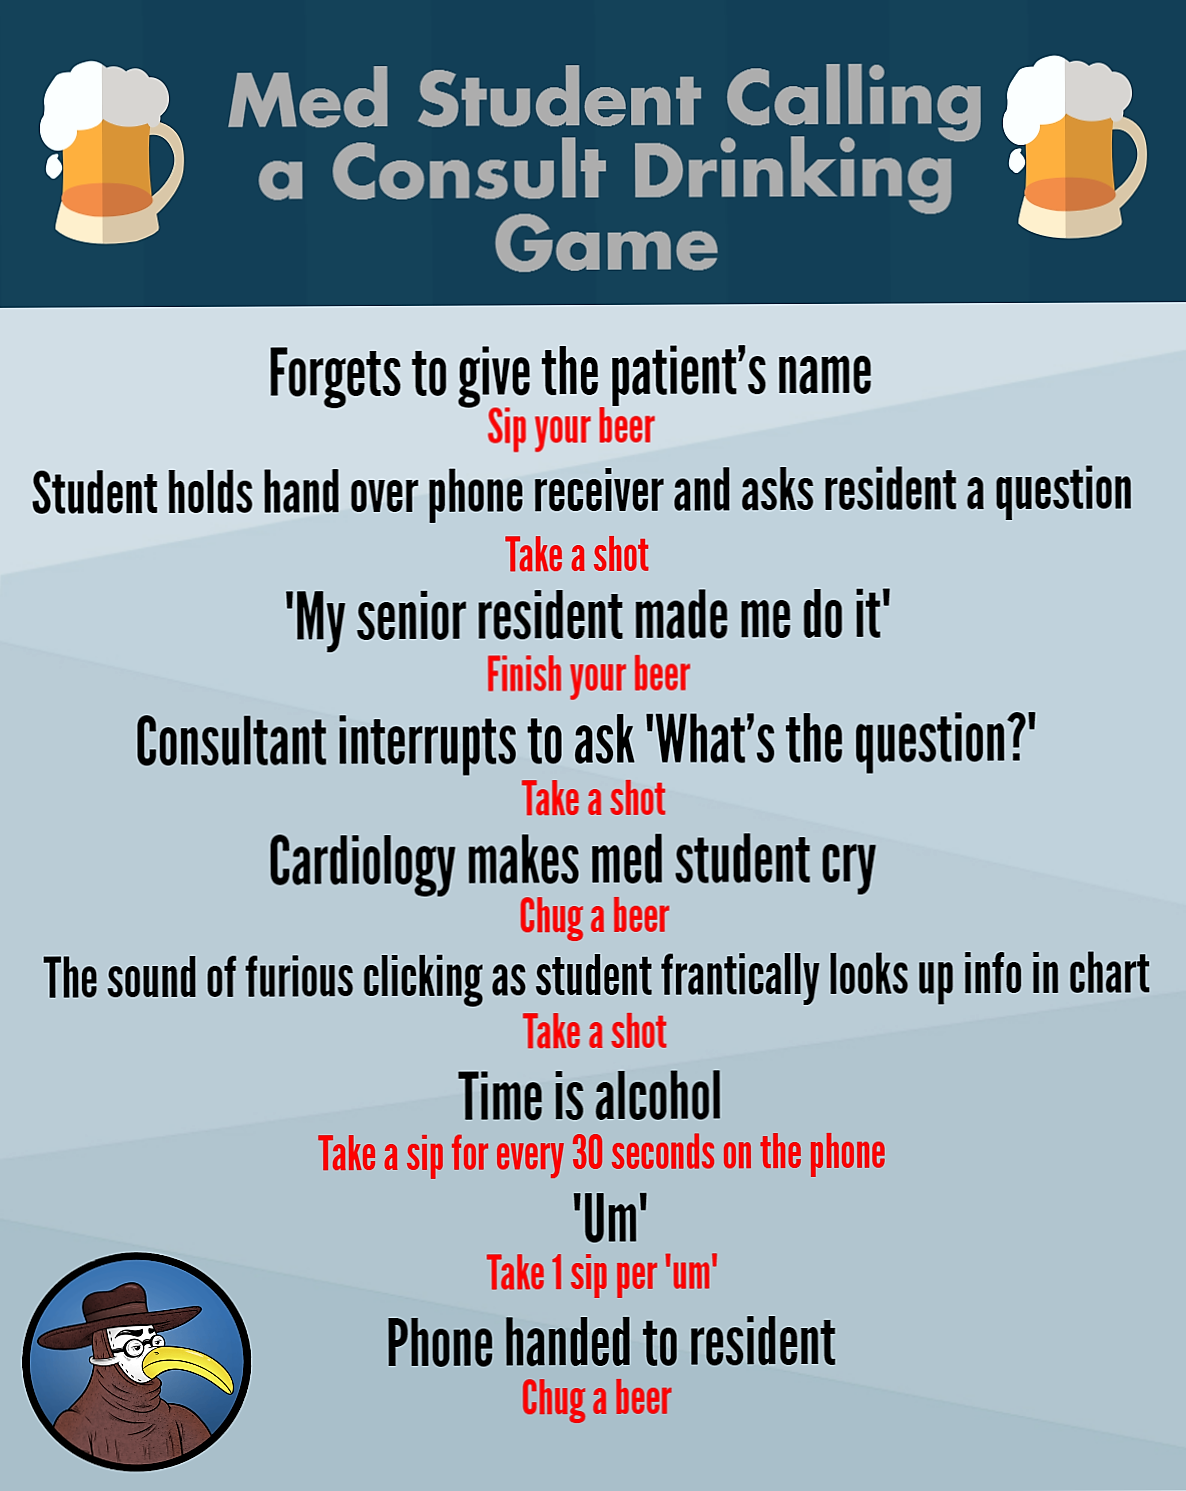 The Med Student Calling a Consult Drinking Game - Distracted